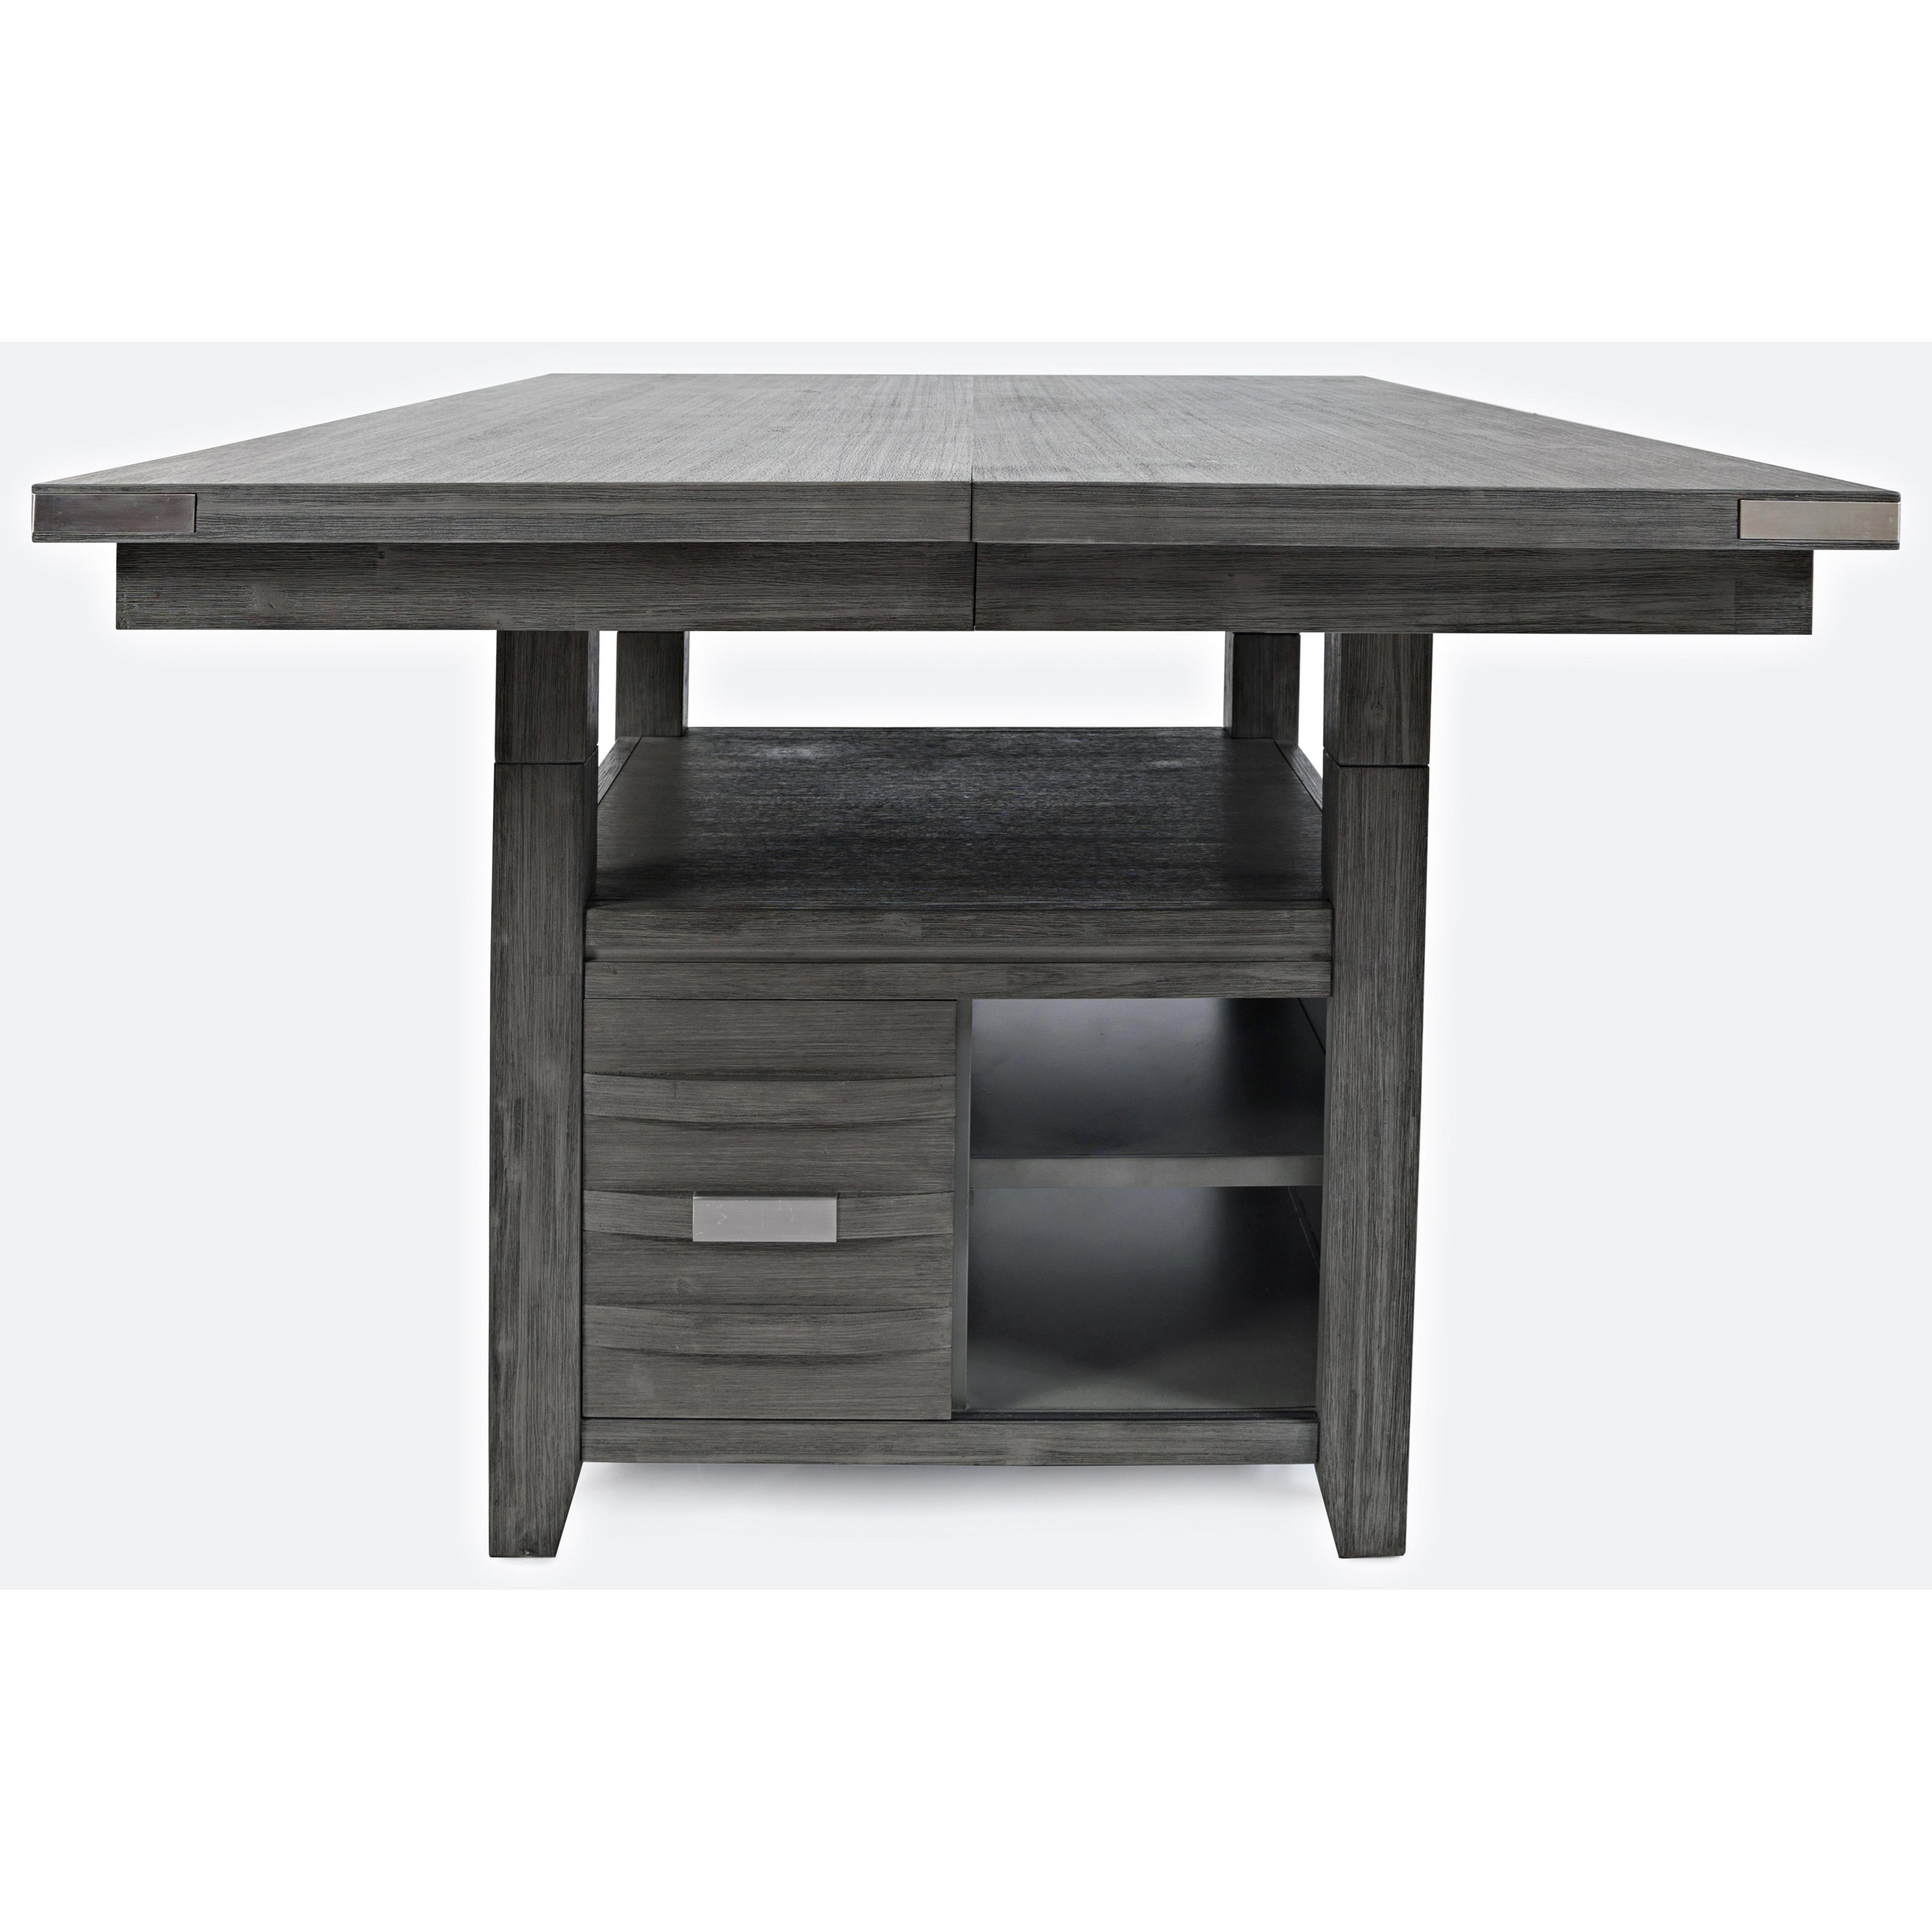 Altamonte  Square Dining w/Storage Base by Jofran at Home Furnishings Direct